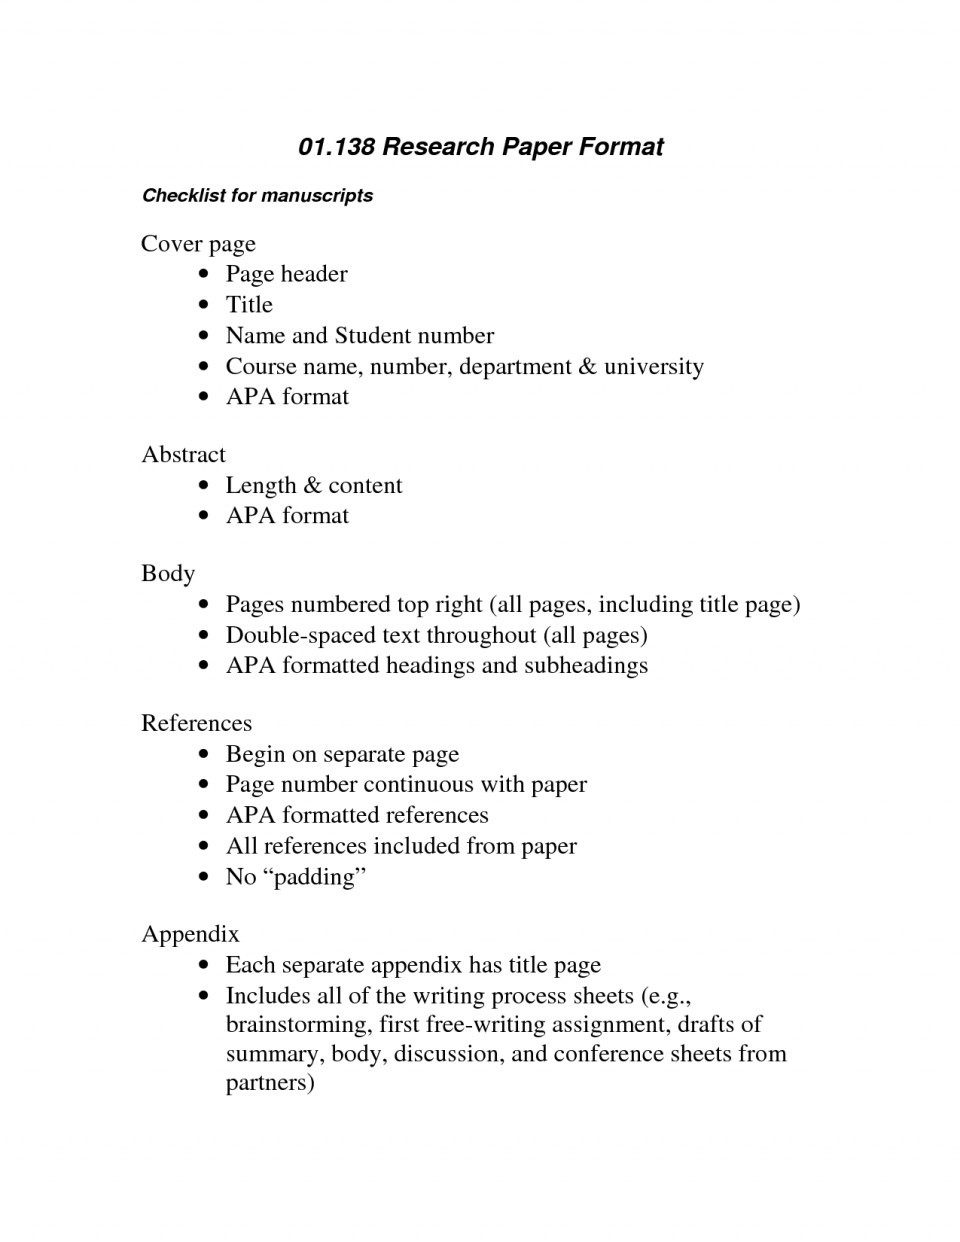 010 Apa Style Guide For Writing Researchs Best Research Papers 960